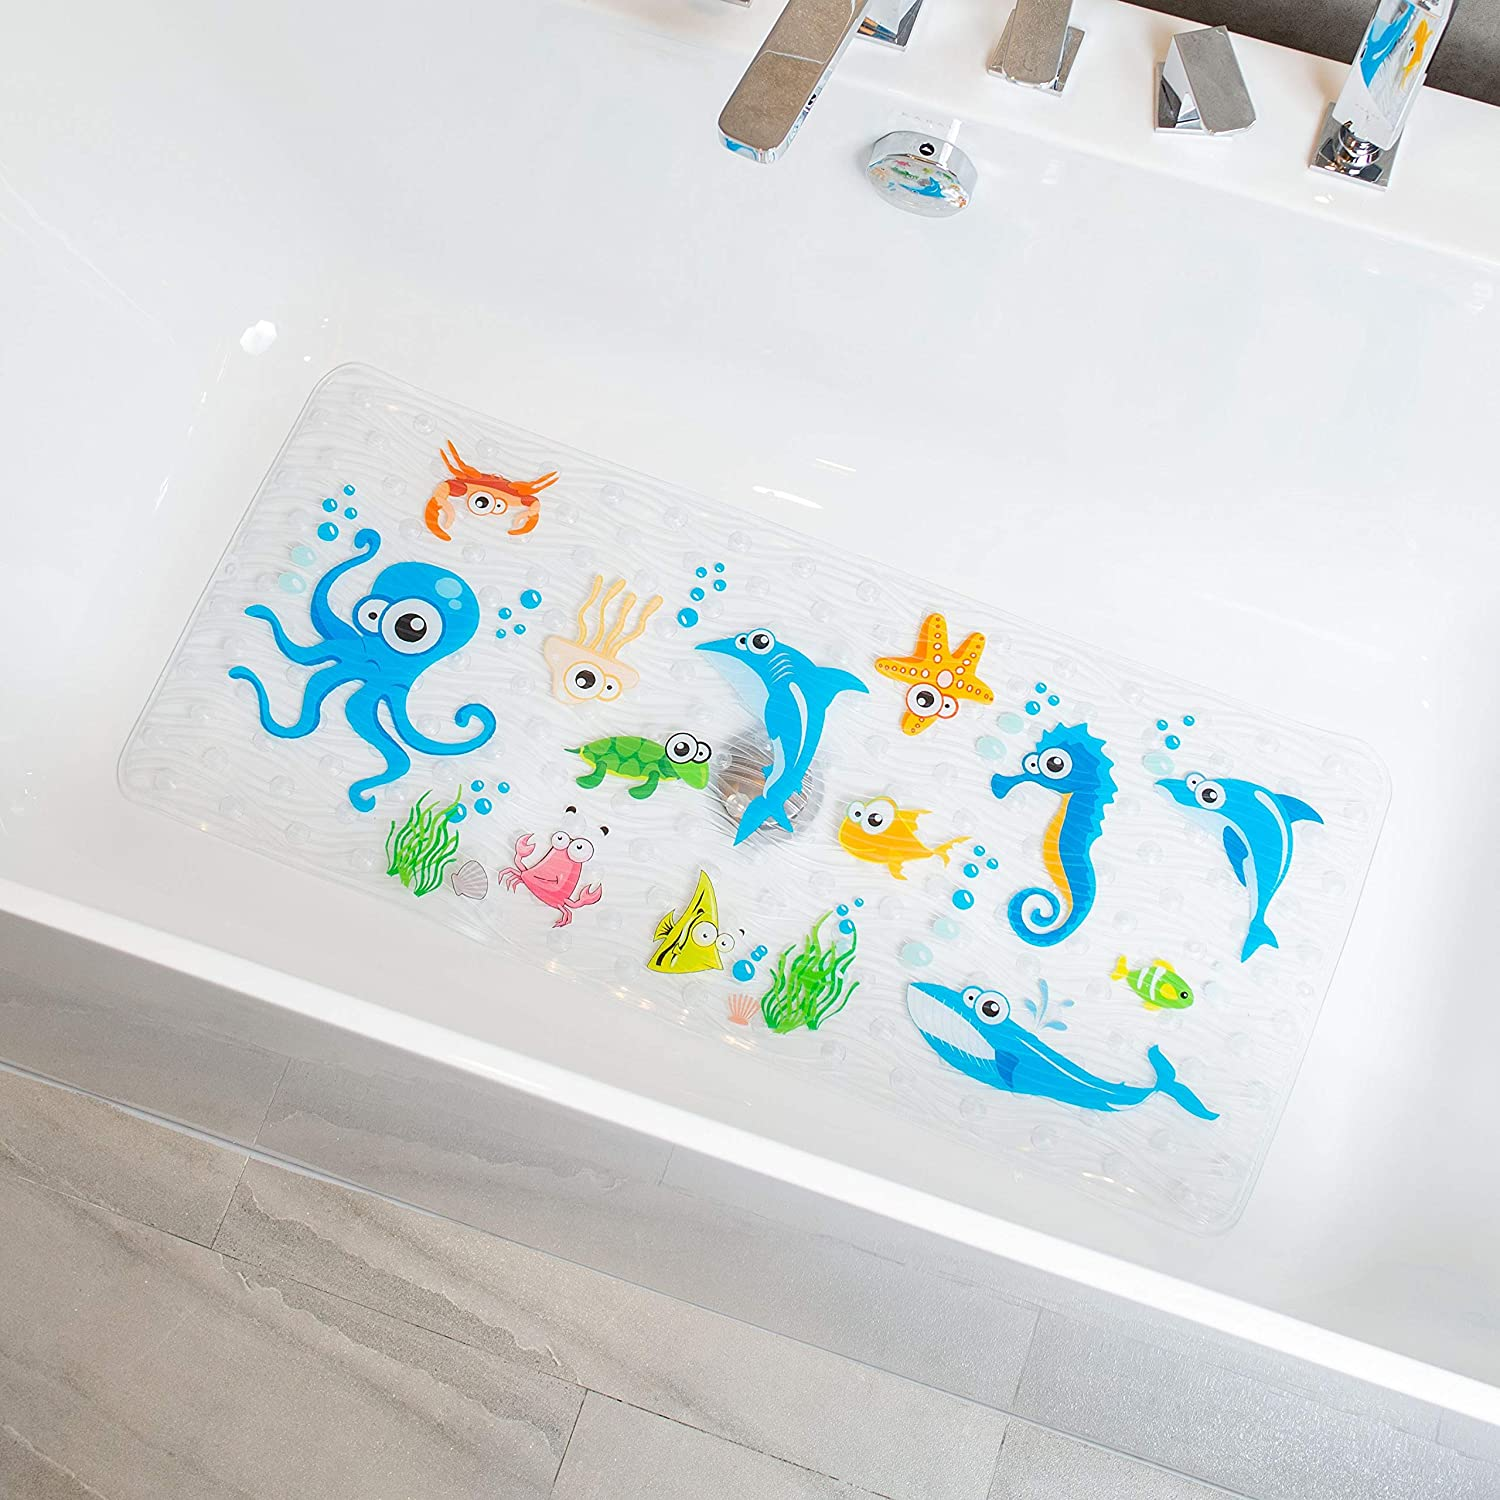 BeeHomee Cartoon Non Slip Bathtub Mat for Kids 35x16 Inch XL Large Size Anti Slip Shower Mats for for Toddlers Children Baby Floor Tub Mats Alphabet